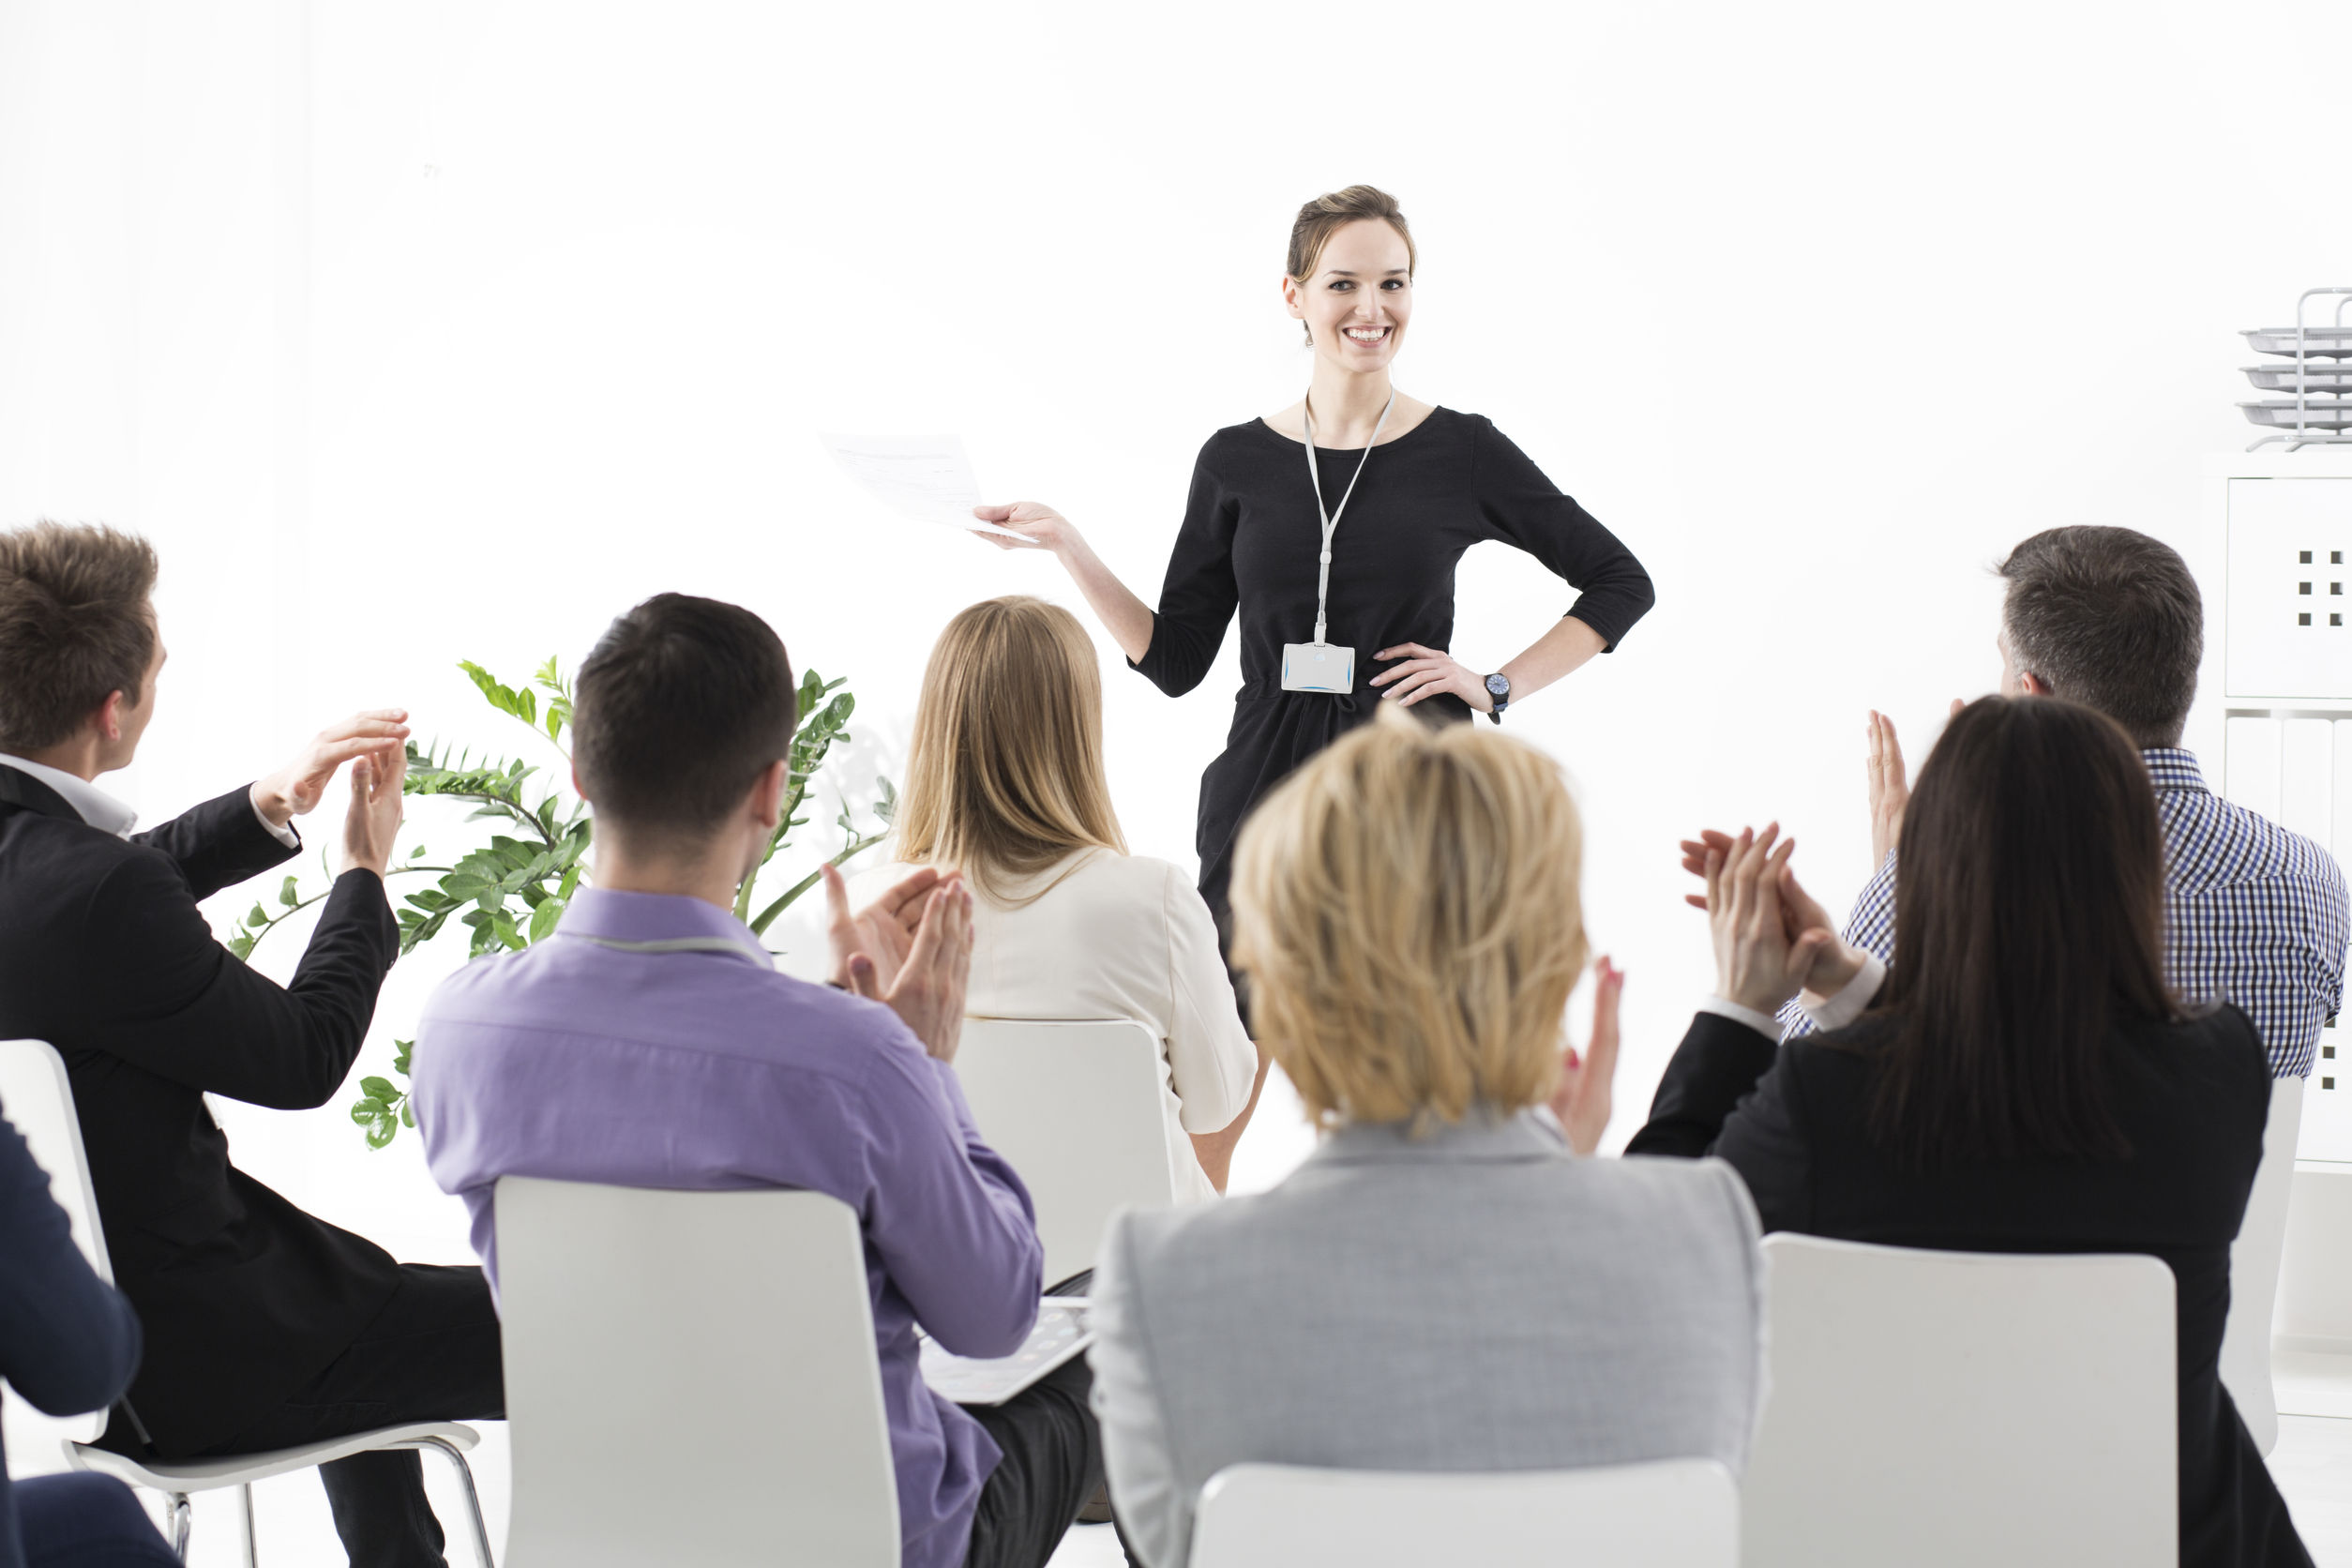 59807451 - young pretty team leader speaking in front of her colleagues during business meeting in corporation